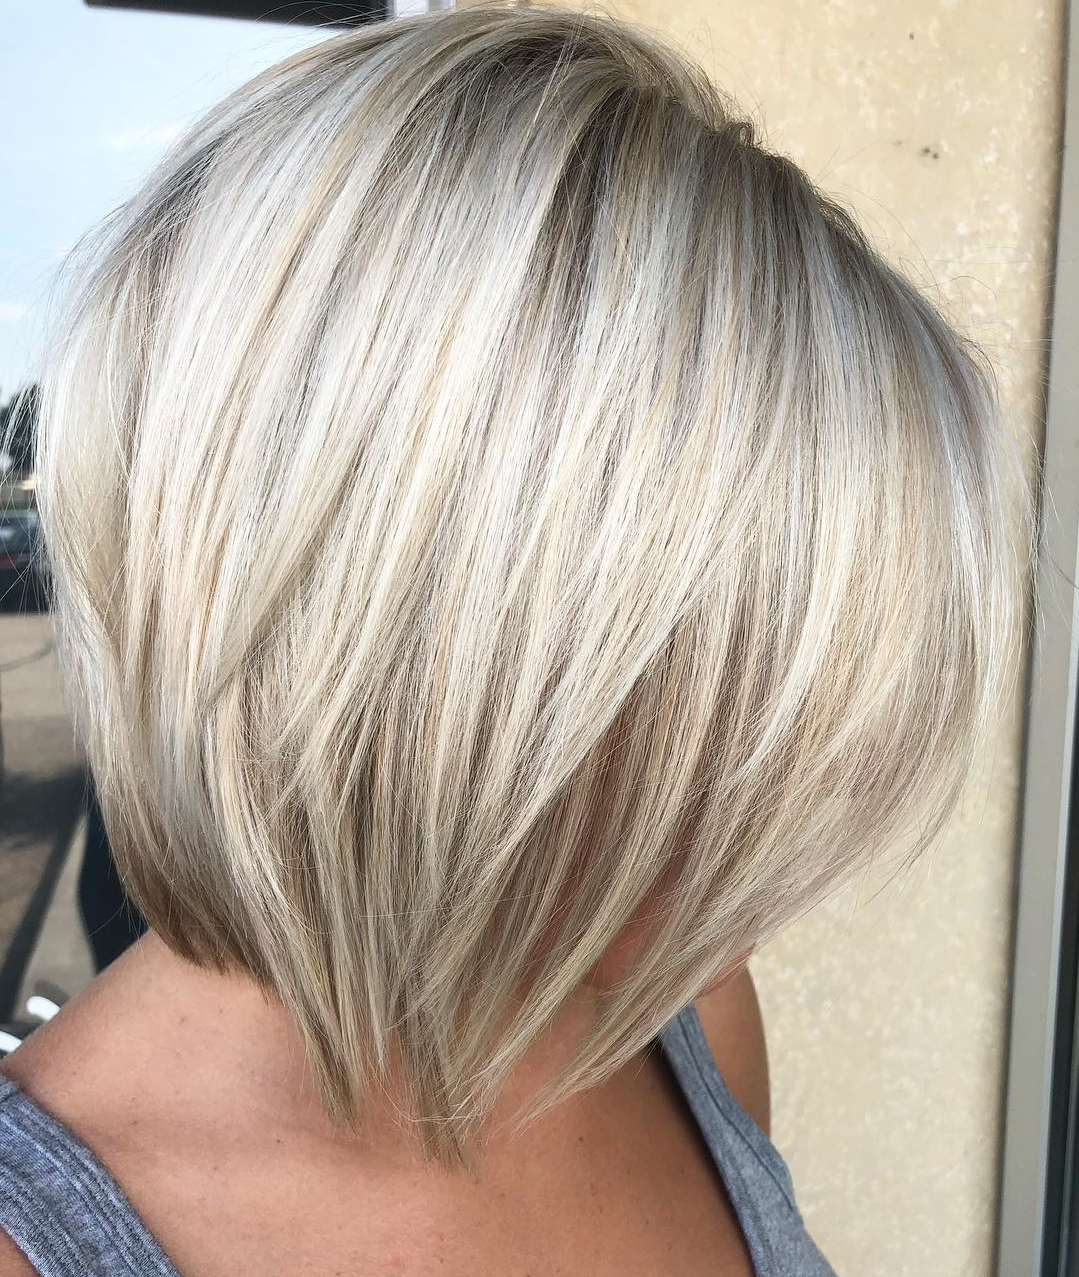 45 Short Hairstyles For Fine Hair To Rock In 2020 Within Preferred Perfect Shaggy Bob Hairstyles For Thin Hair (View 5 of 20)